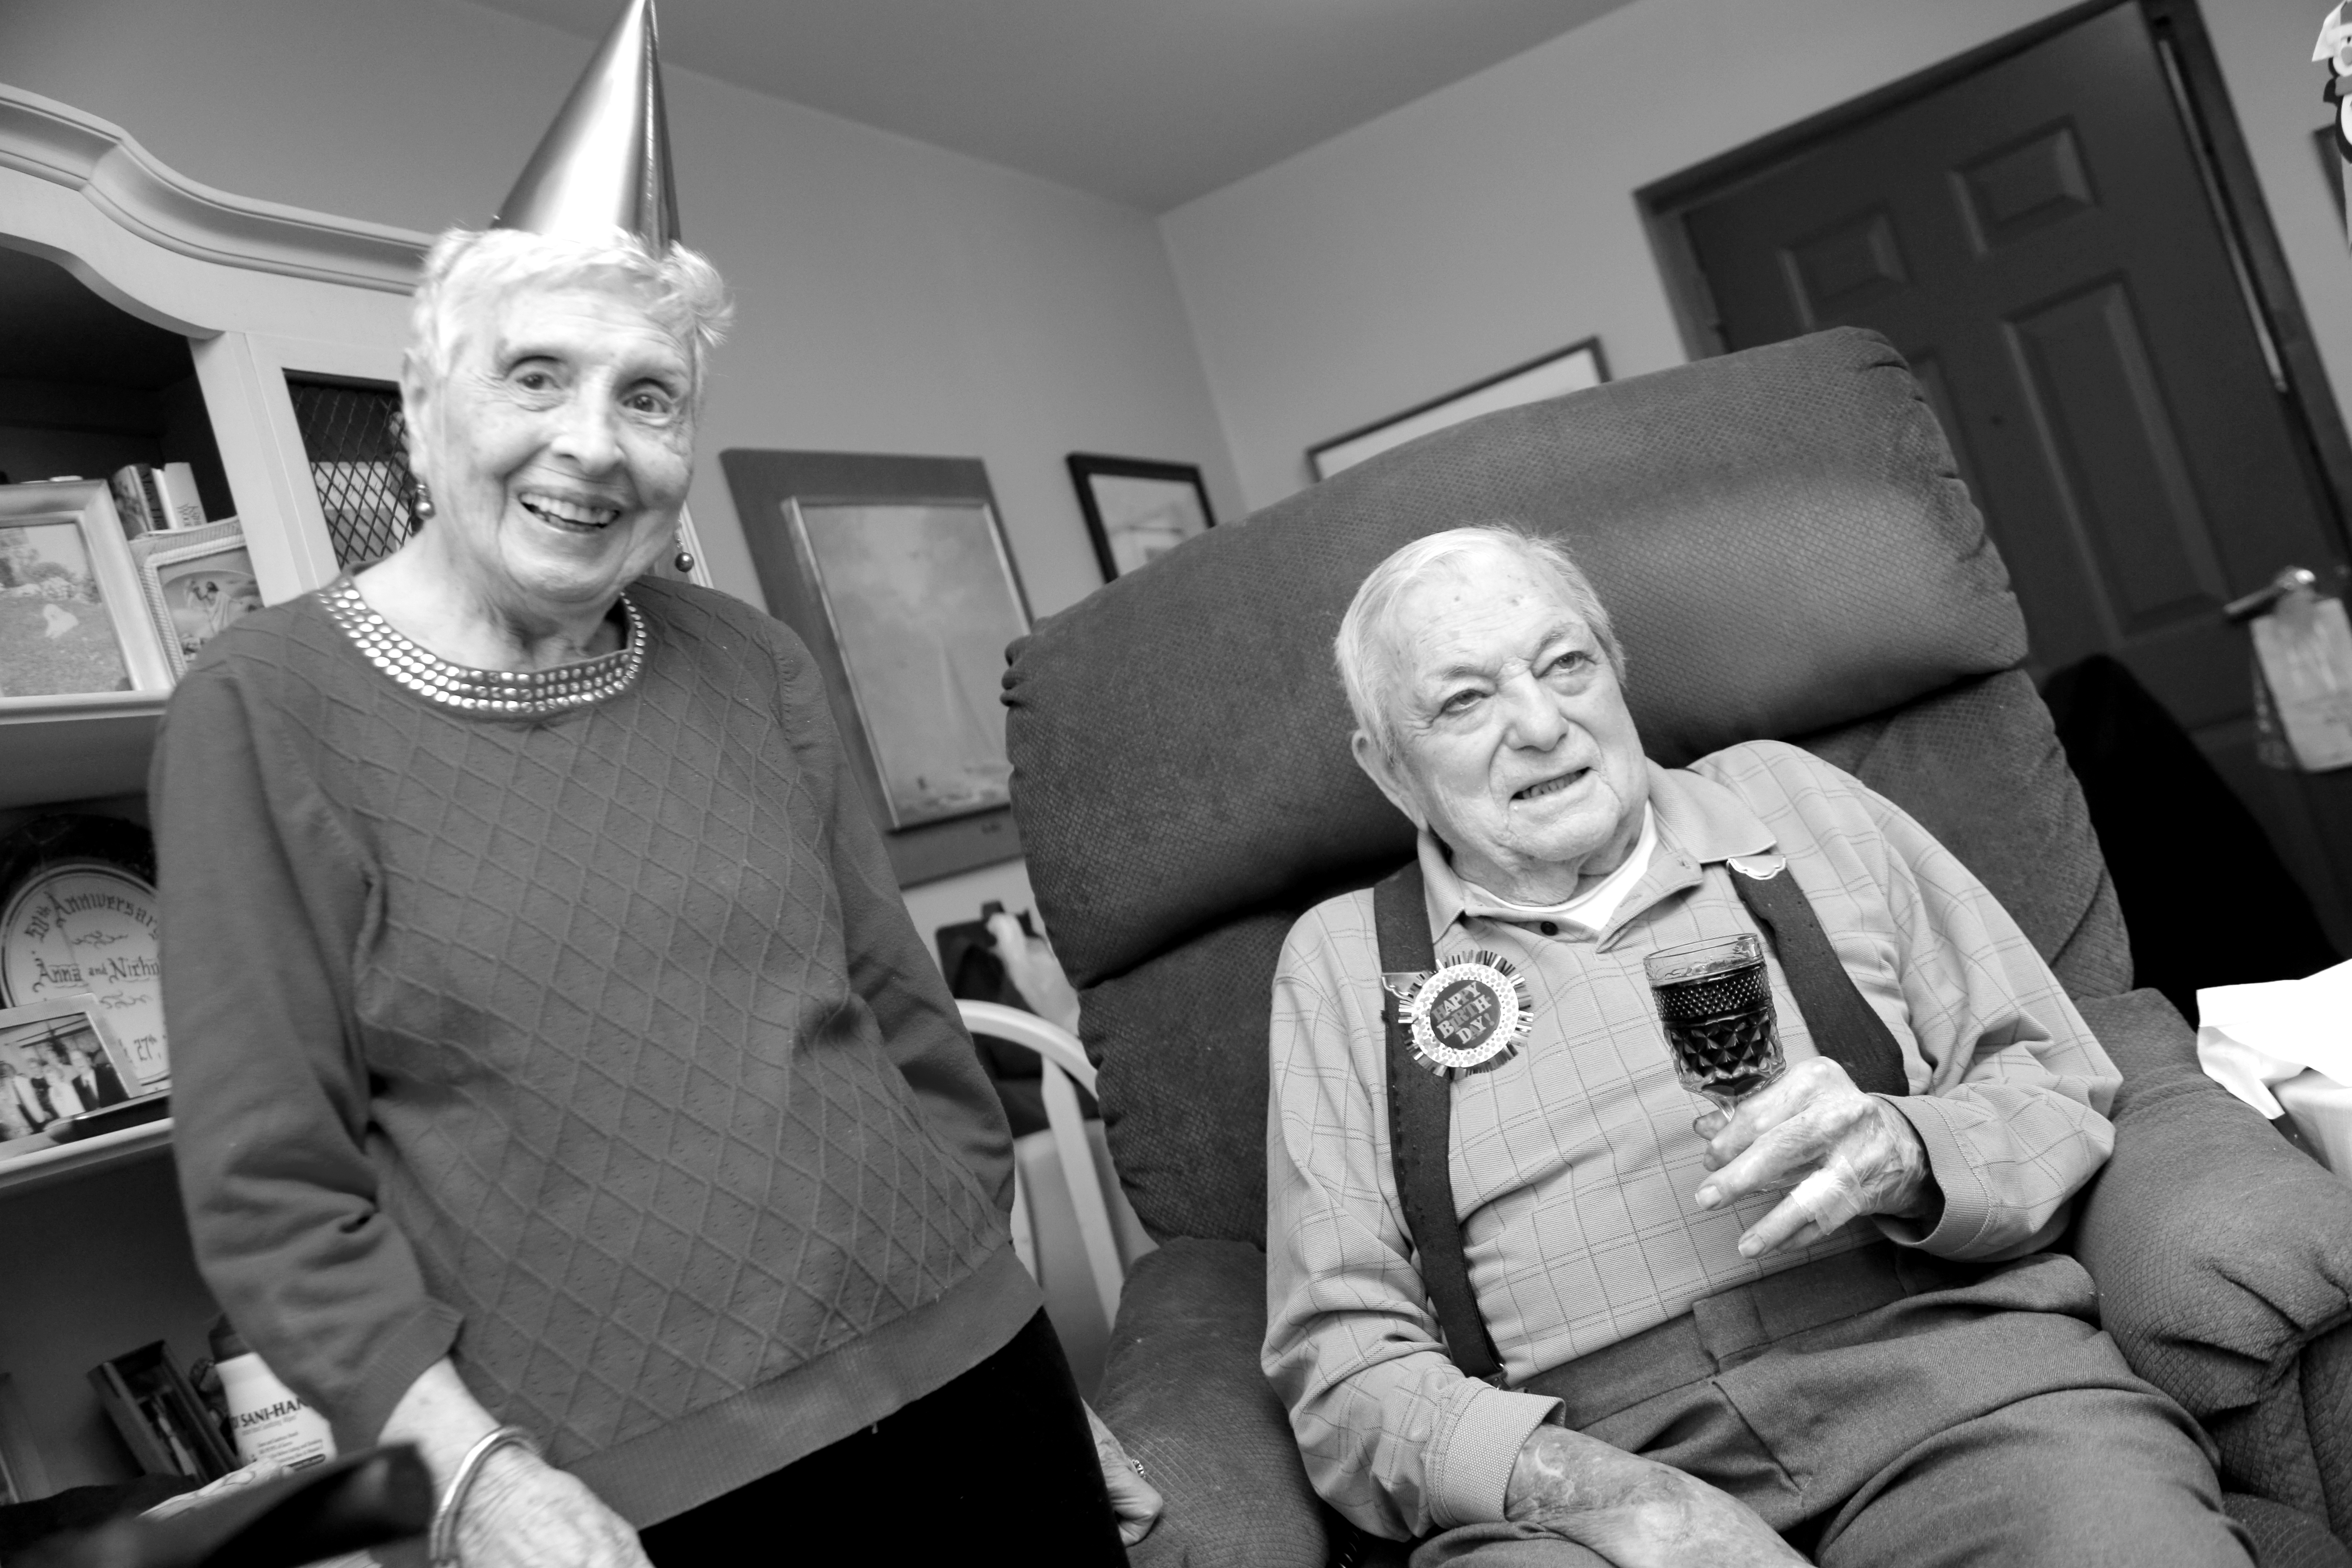 Dan Moracarco, a World War II Air Force Veteran with his wife Marie celebrating his 98th birthday with his home health care aides from Community Home Health Care